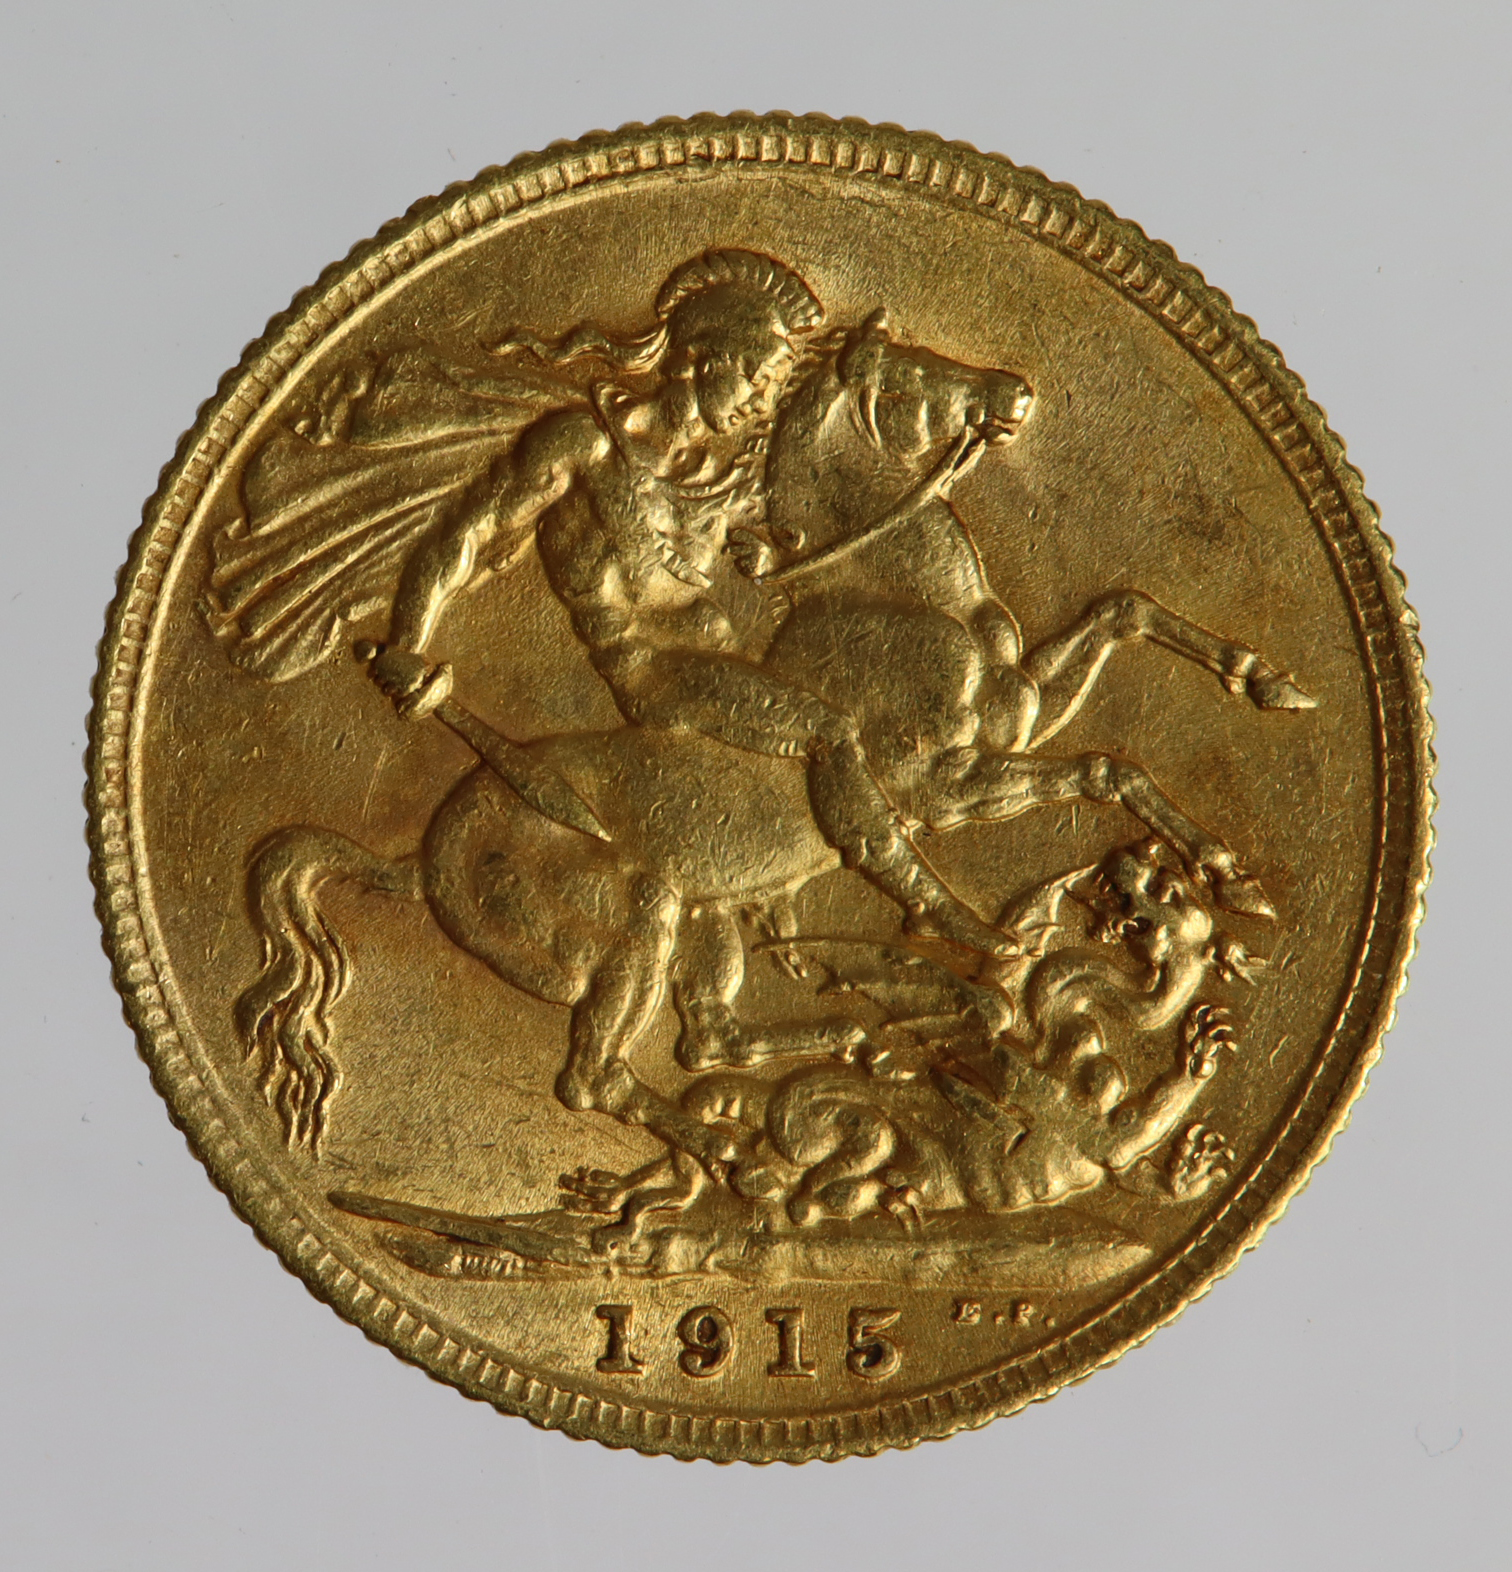 Sovereign 1915 VF - Image 2 of 2